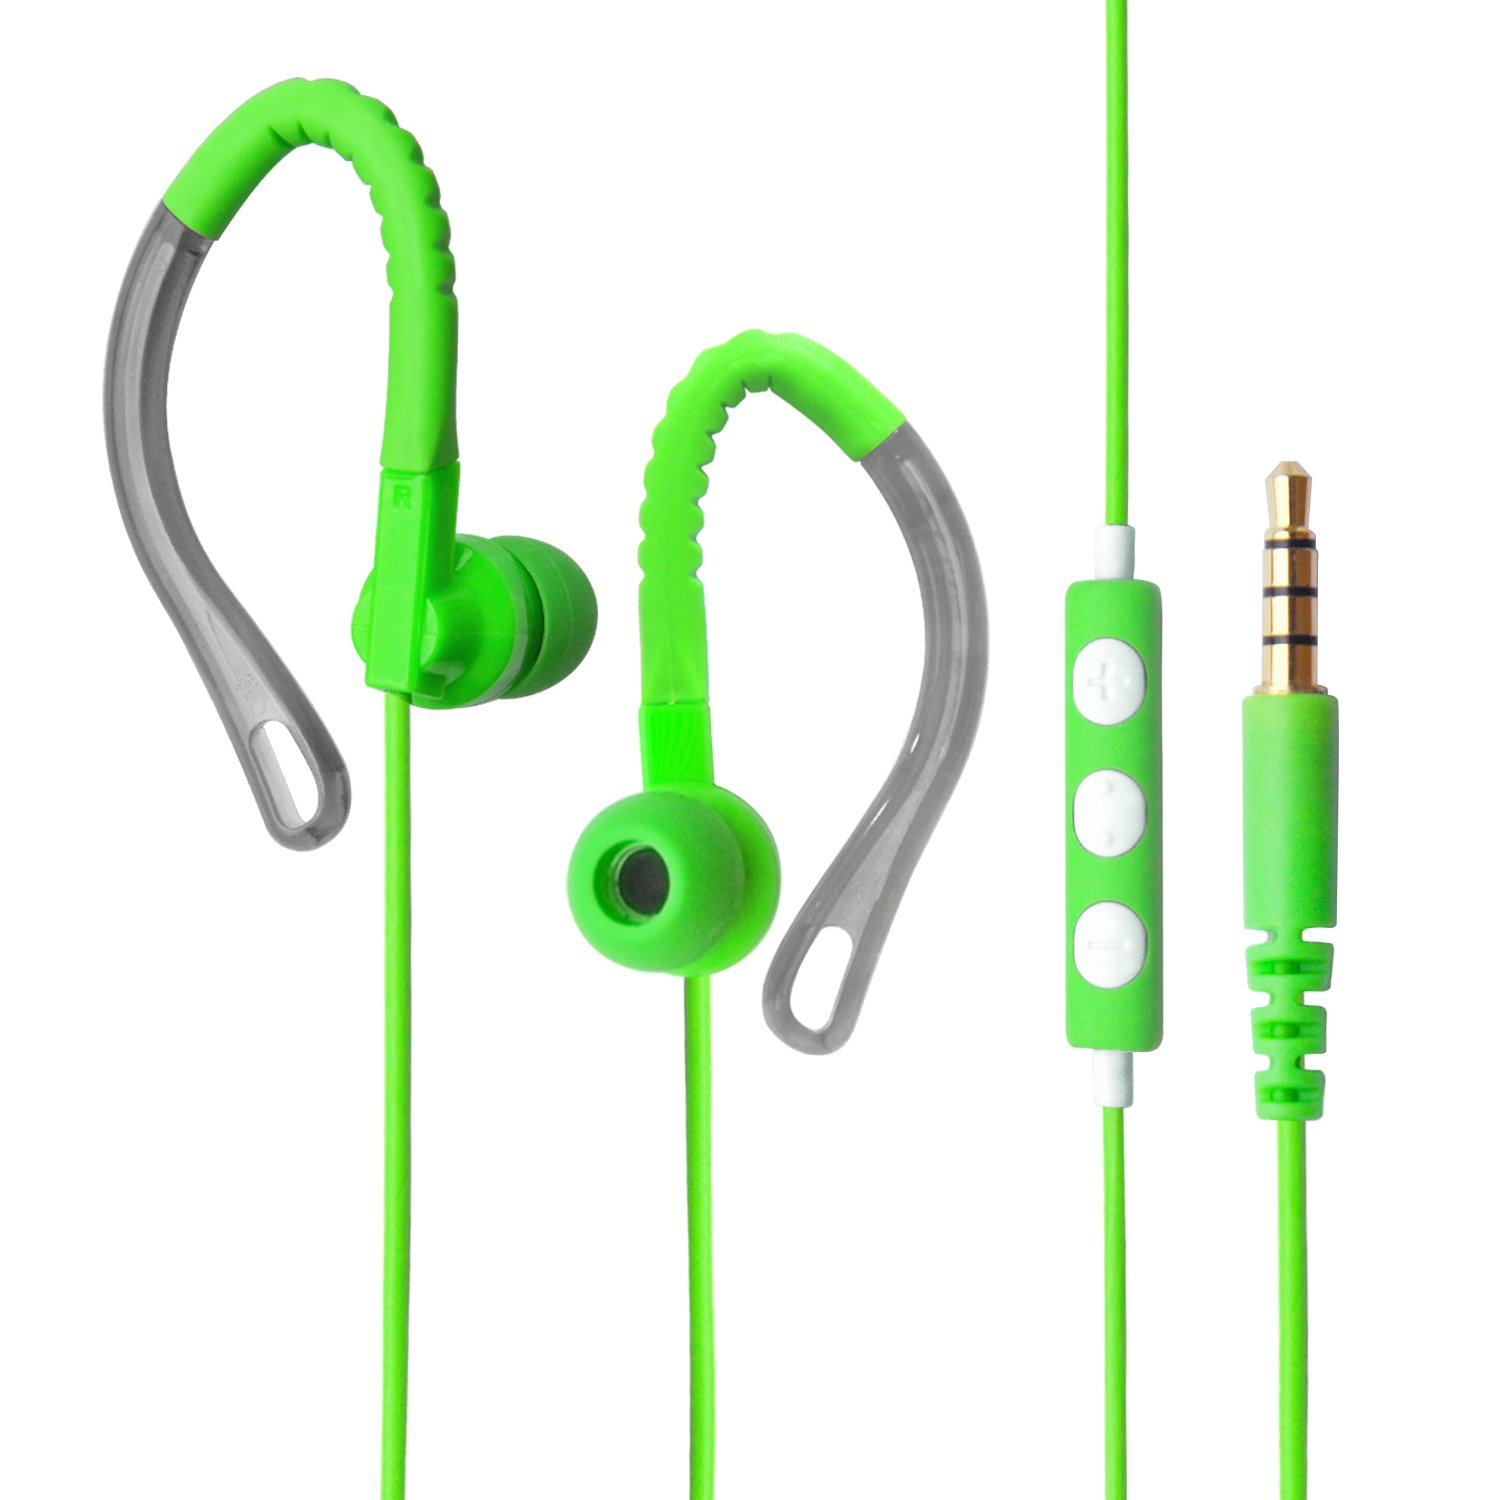 MAXROCK (TM 3.5mm Stereo Audio Headphones Running Microphone Volume Control Wired Earbuds Cellphones, Tablet.(Green) TOPTELE